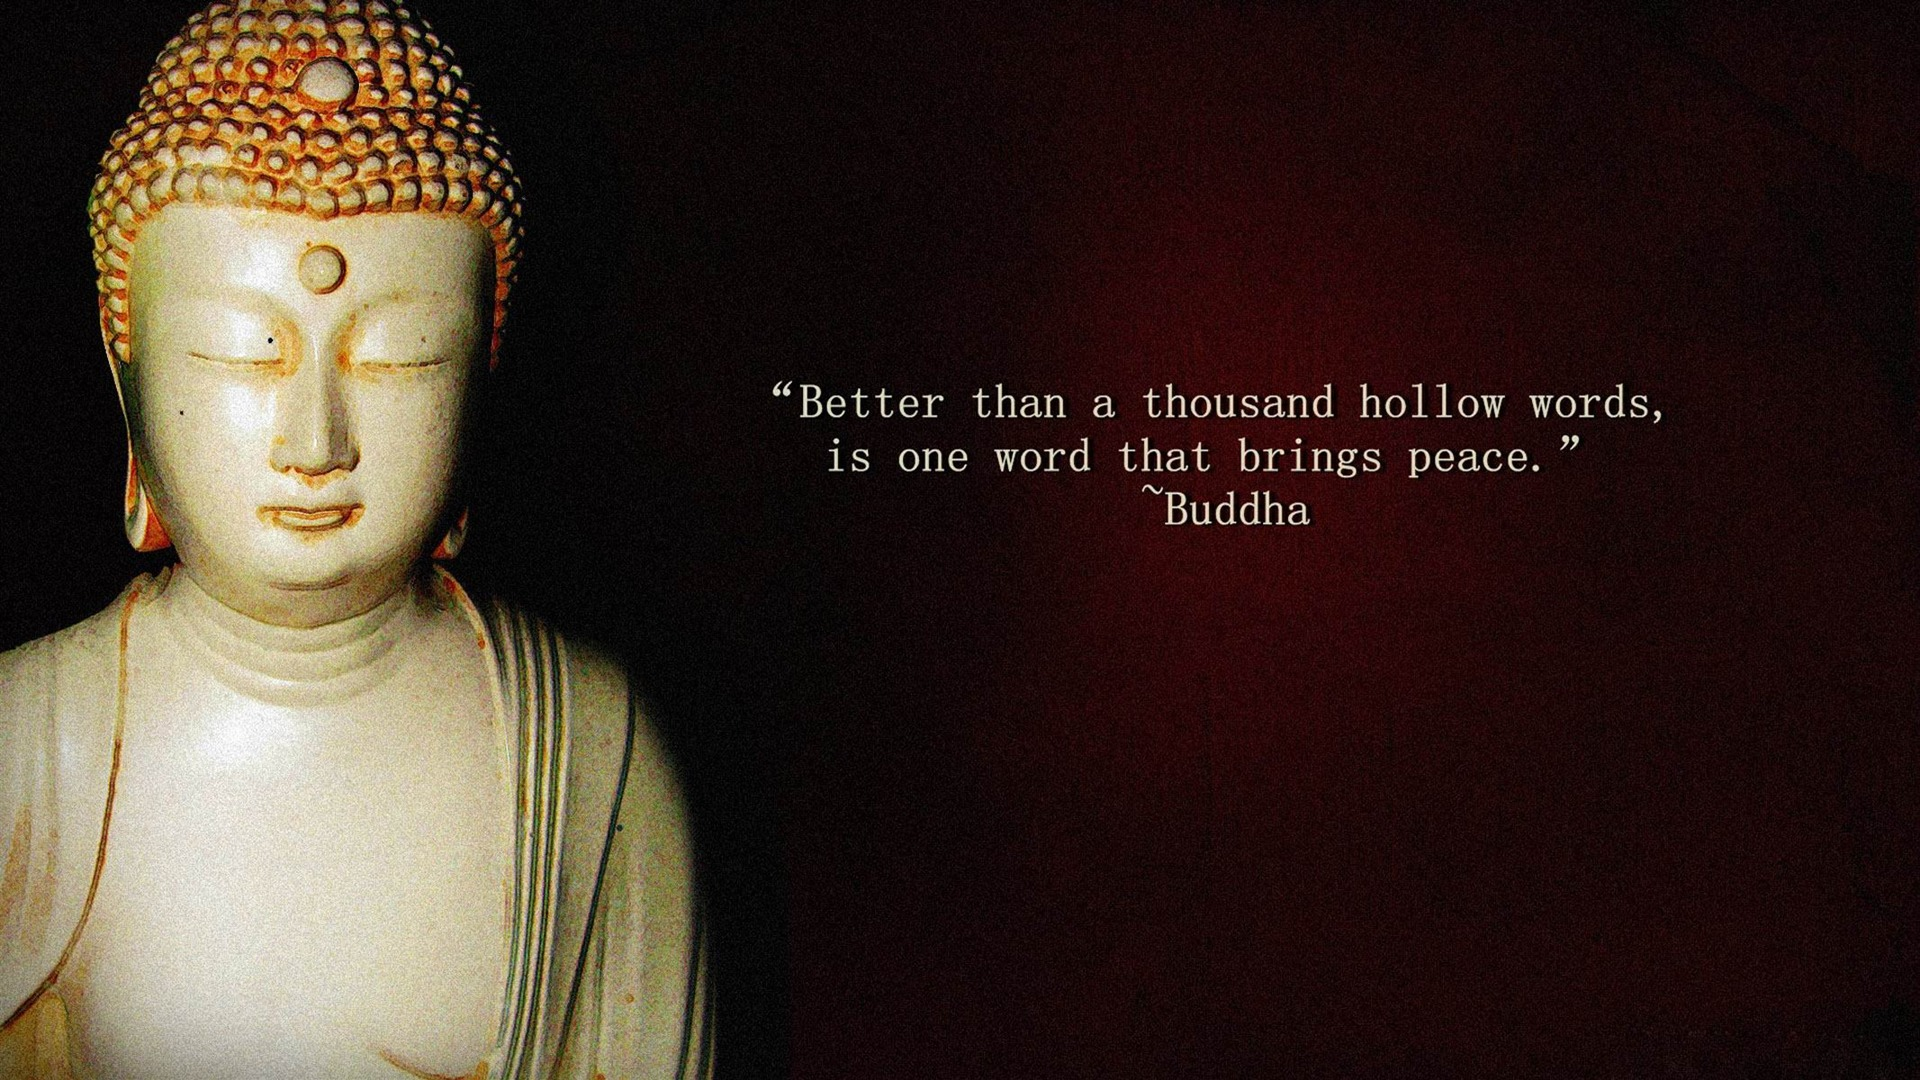 citation-de-Bouddha-Art-numérique-HD-Fonds-d-écran-1920x1080-Fond-d-écran-Télécharger-wallpaper-wp3803804